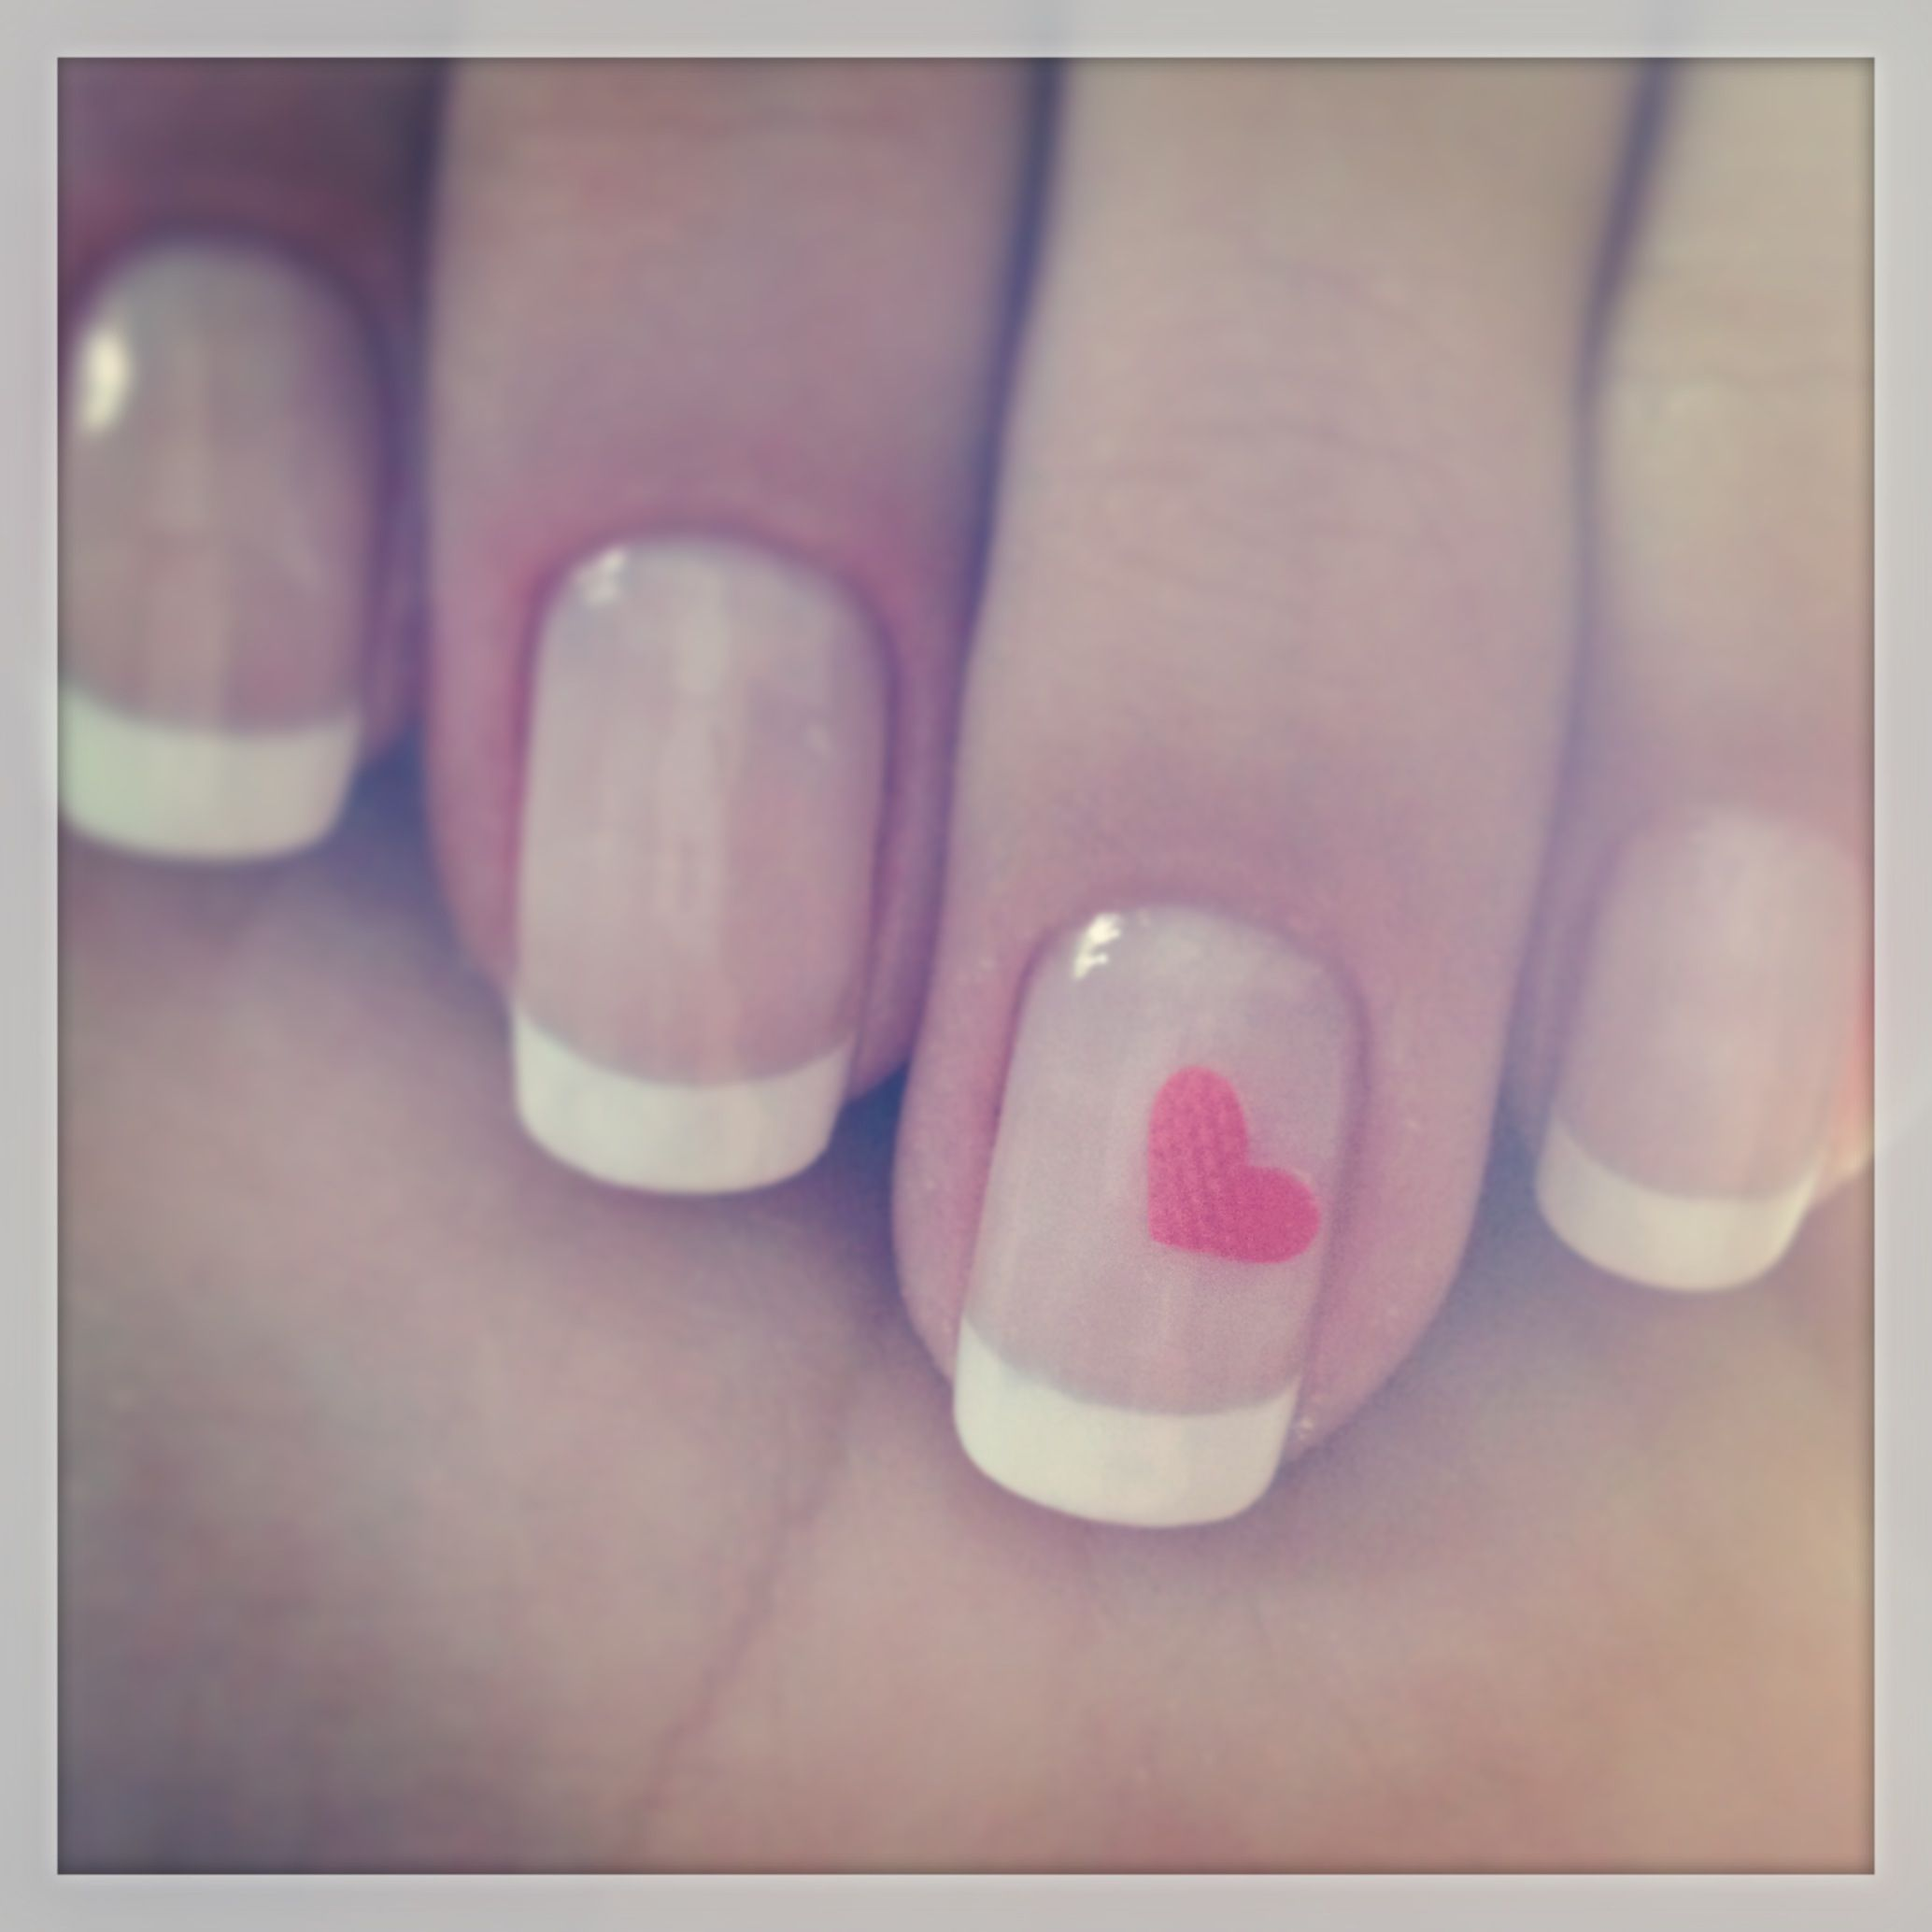 French nails with ❤